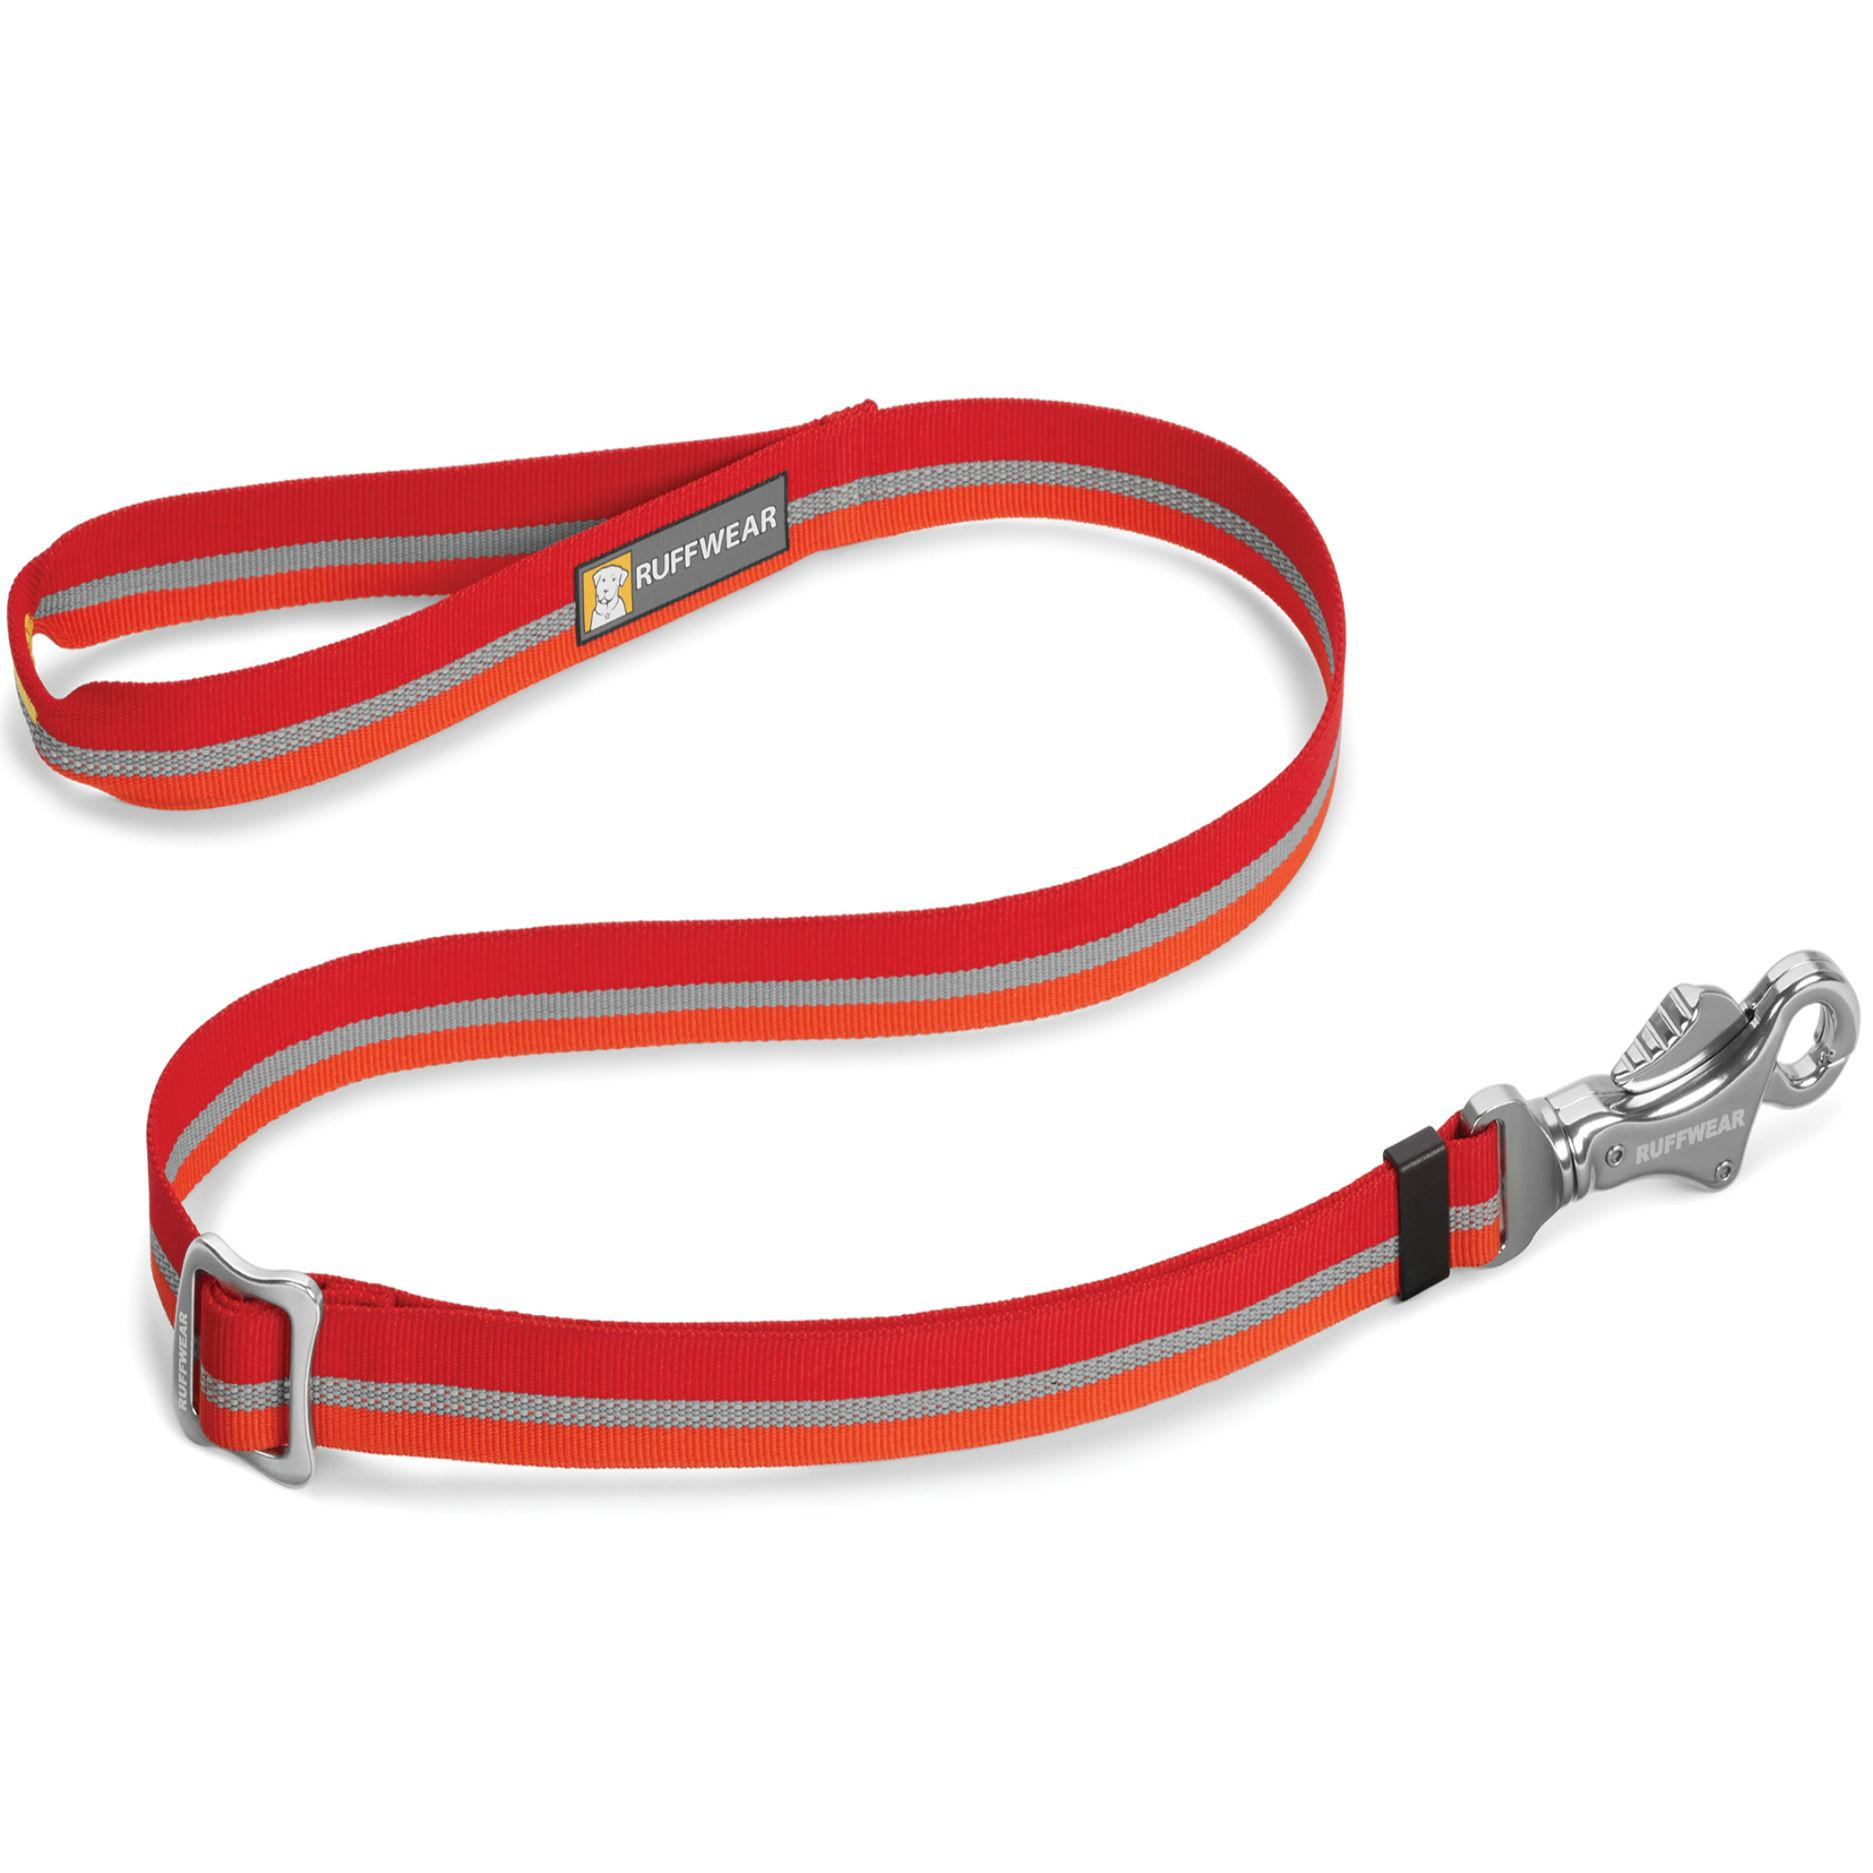 Patroller Dog Leash by Ruffwear - Kokanee Red